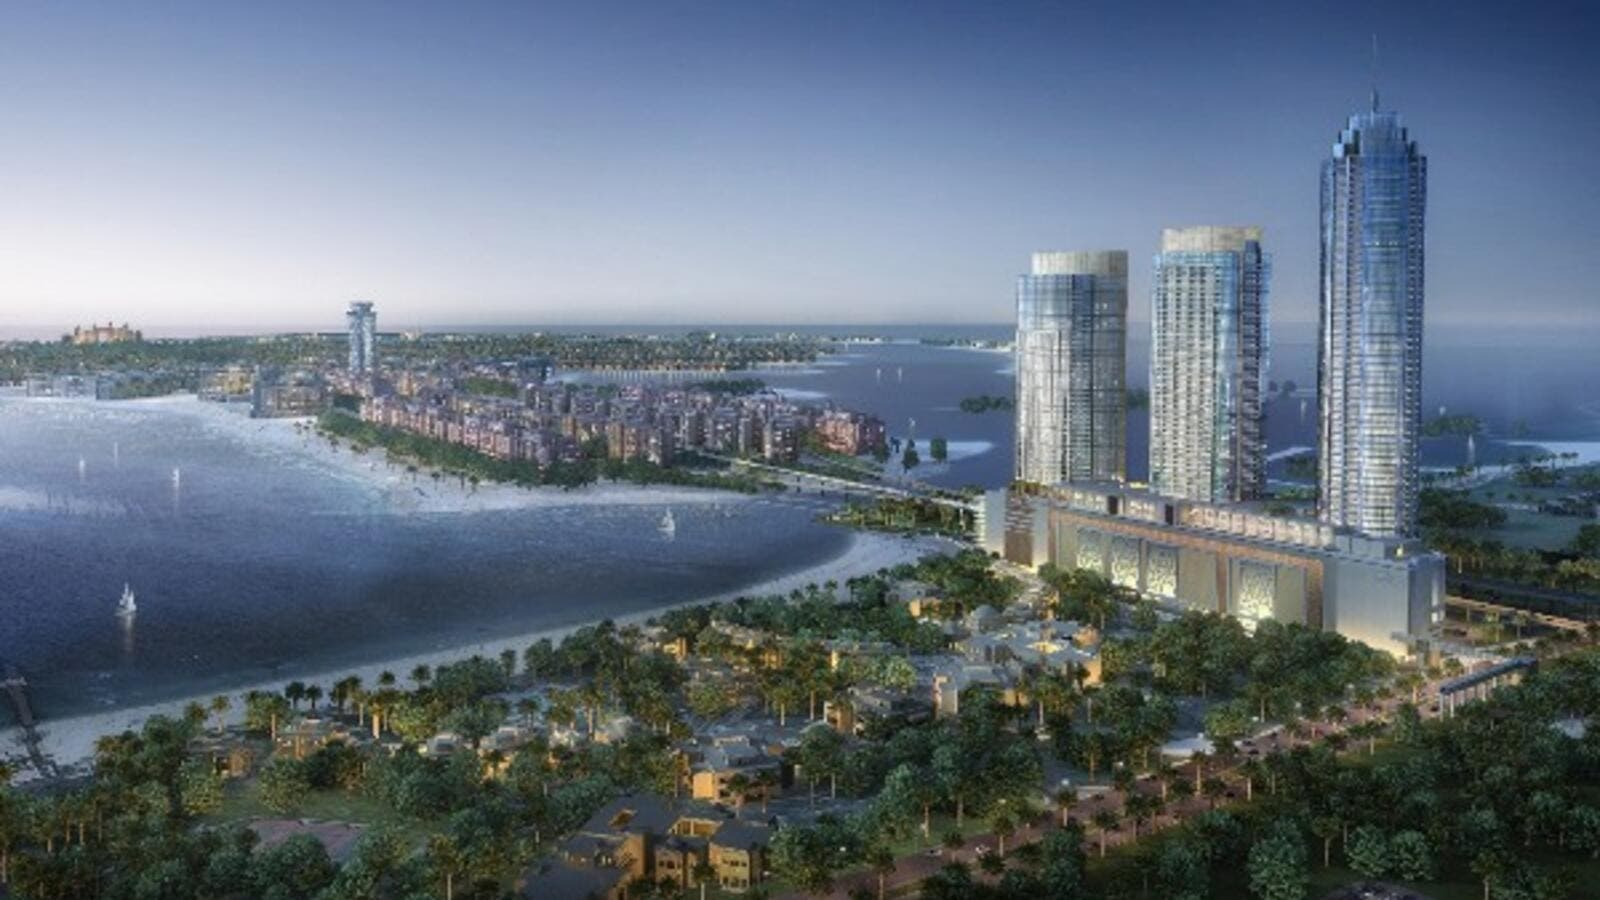 Artist's impression of Nakheel's $280M Palm Gateway Towers. (Nakheel)